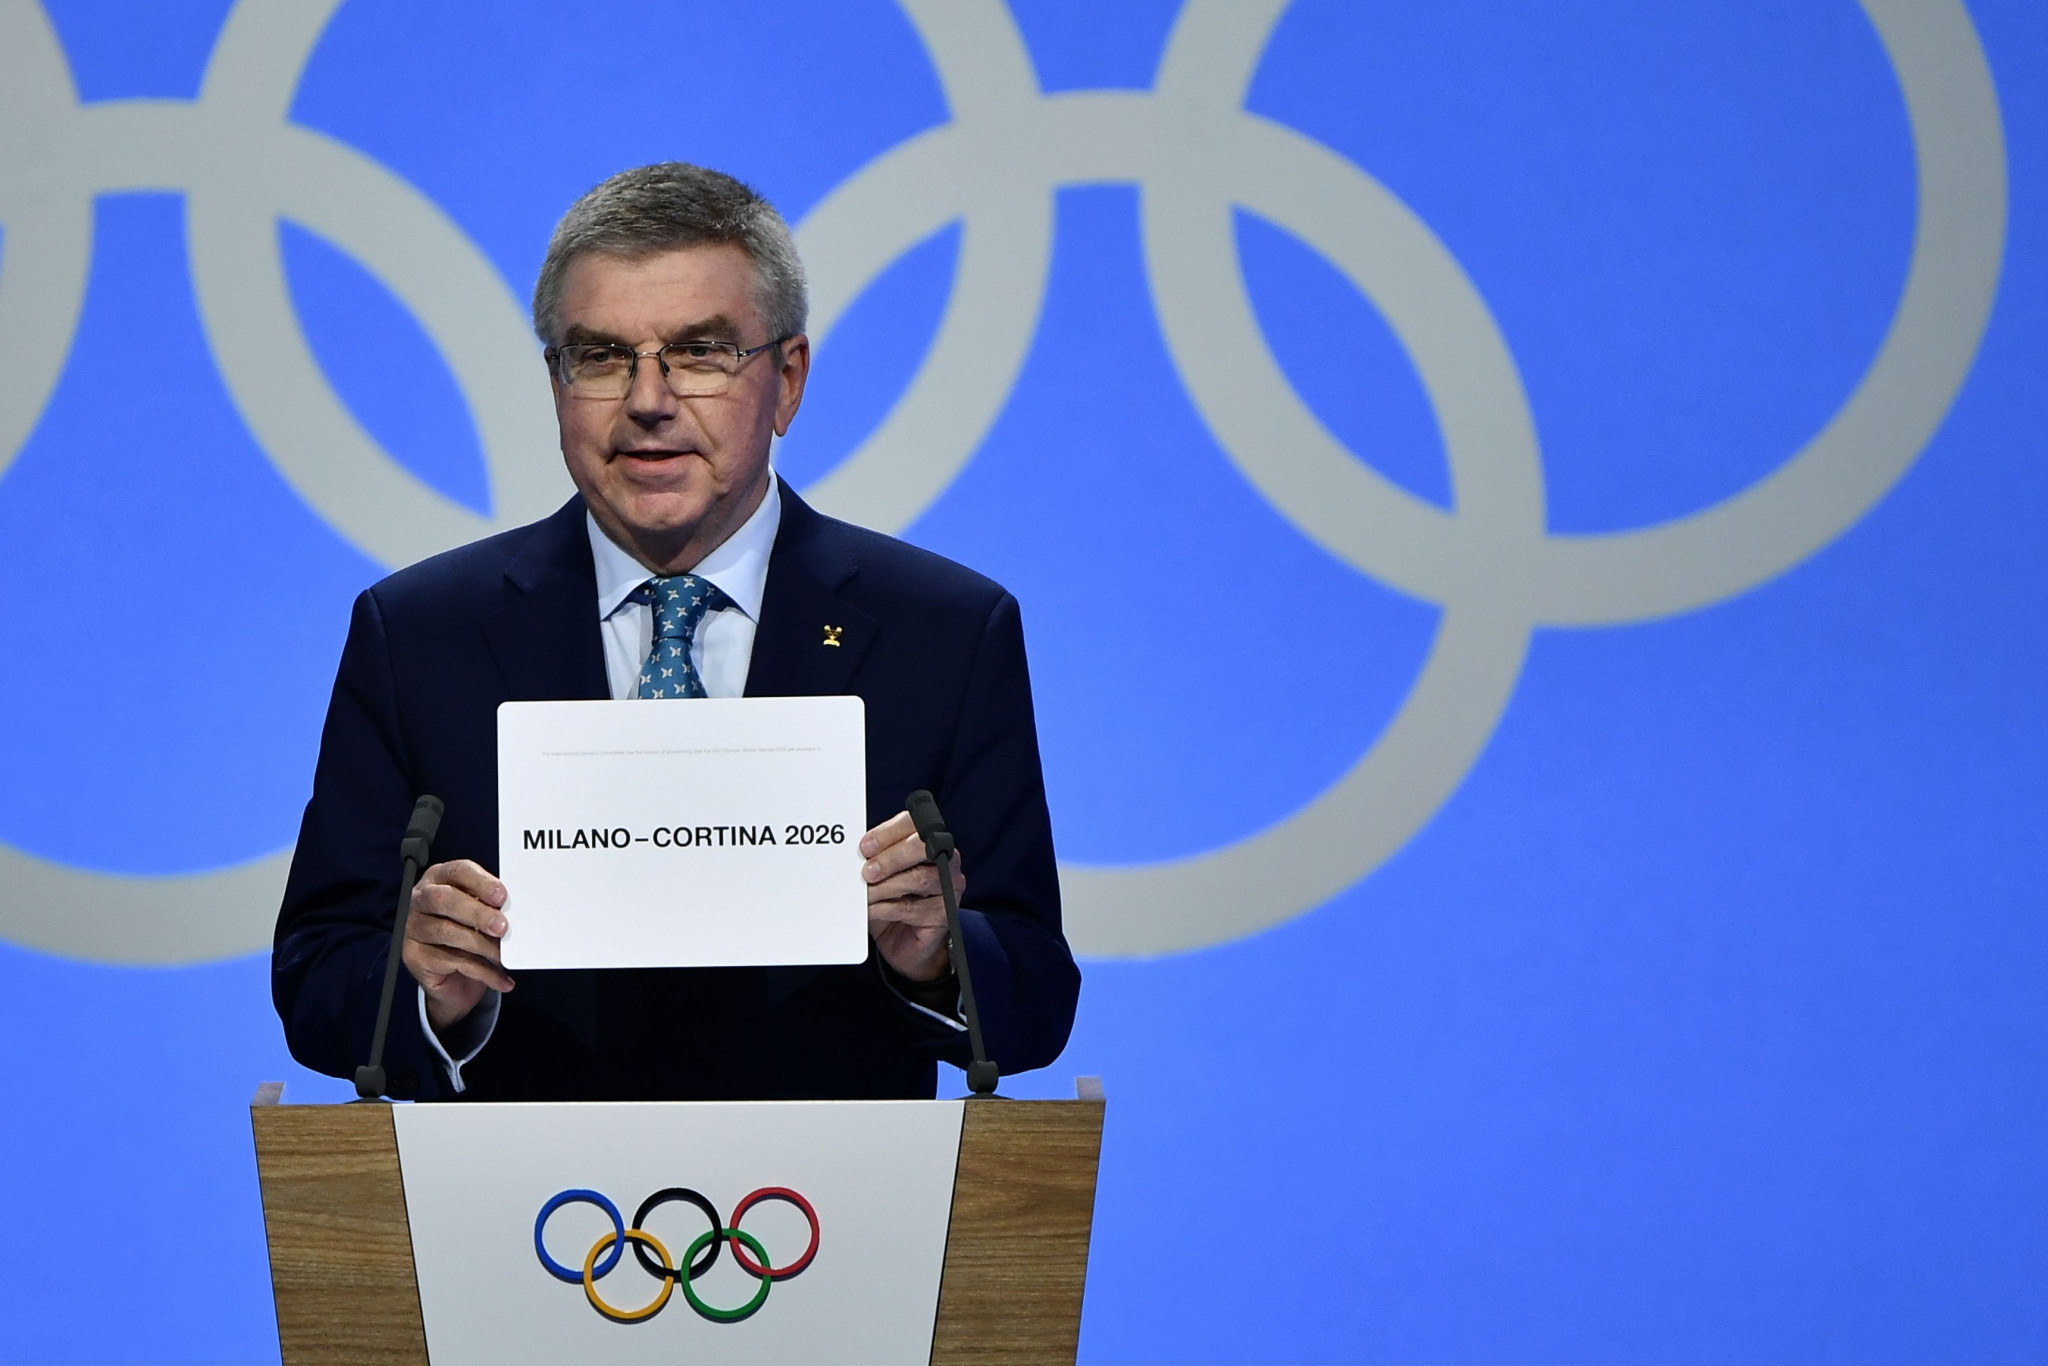 Italians win vote to host 2026 Winter Olympic and Paralympic Games